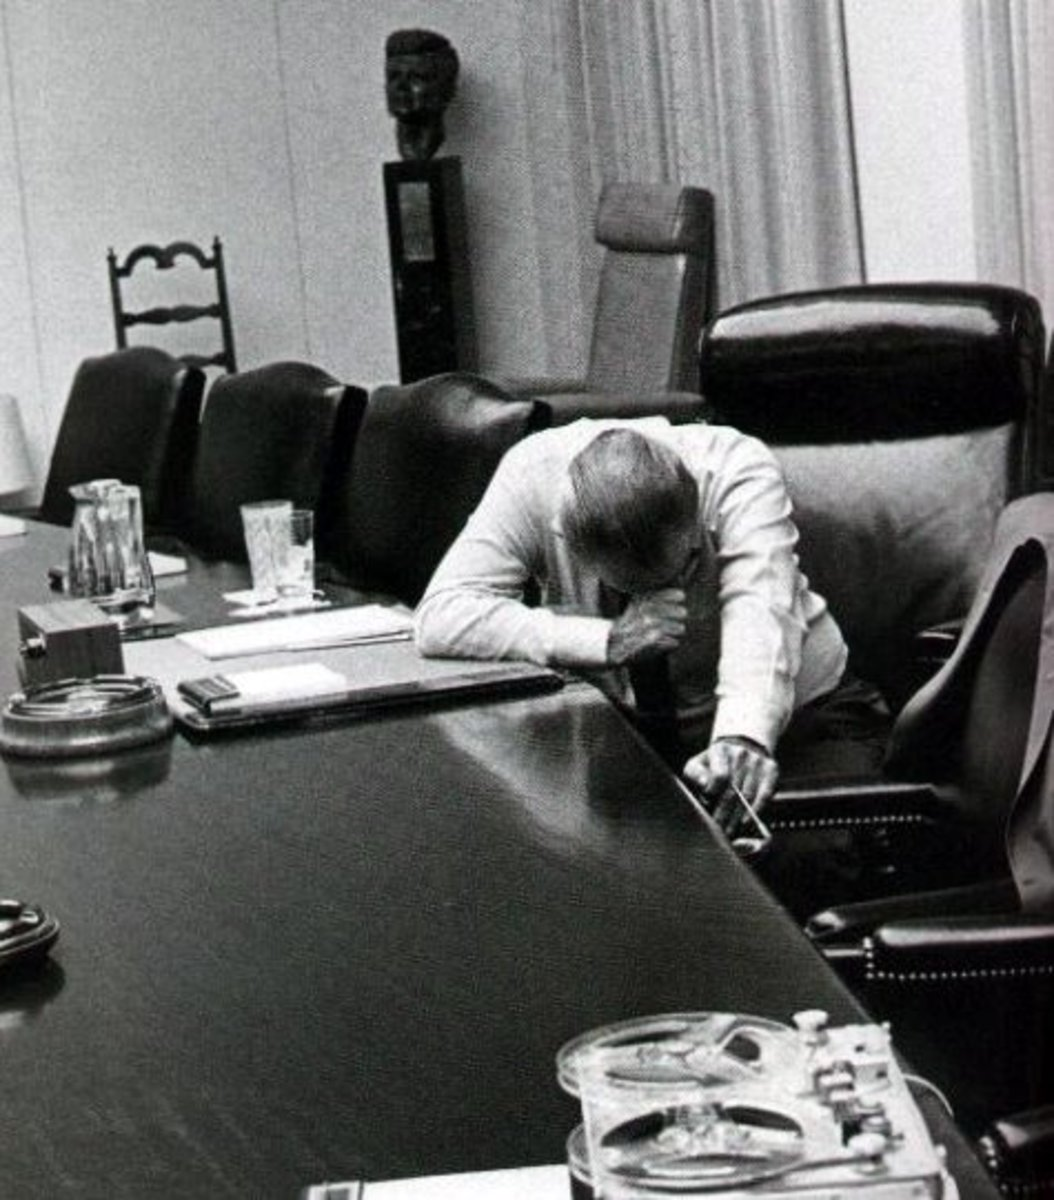 President Johnson listens to a tape in which his marine son-in-law describes his experiences in Vietnam.